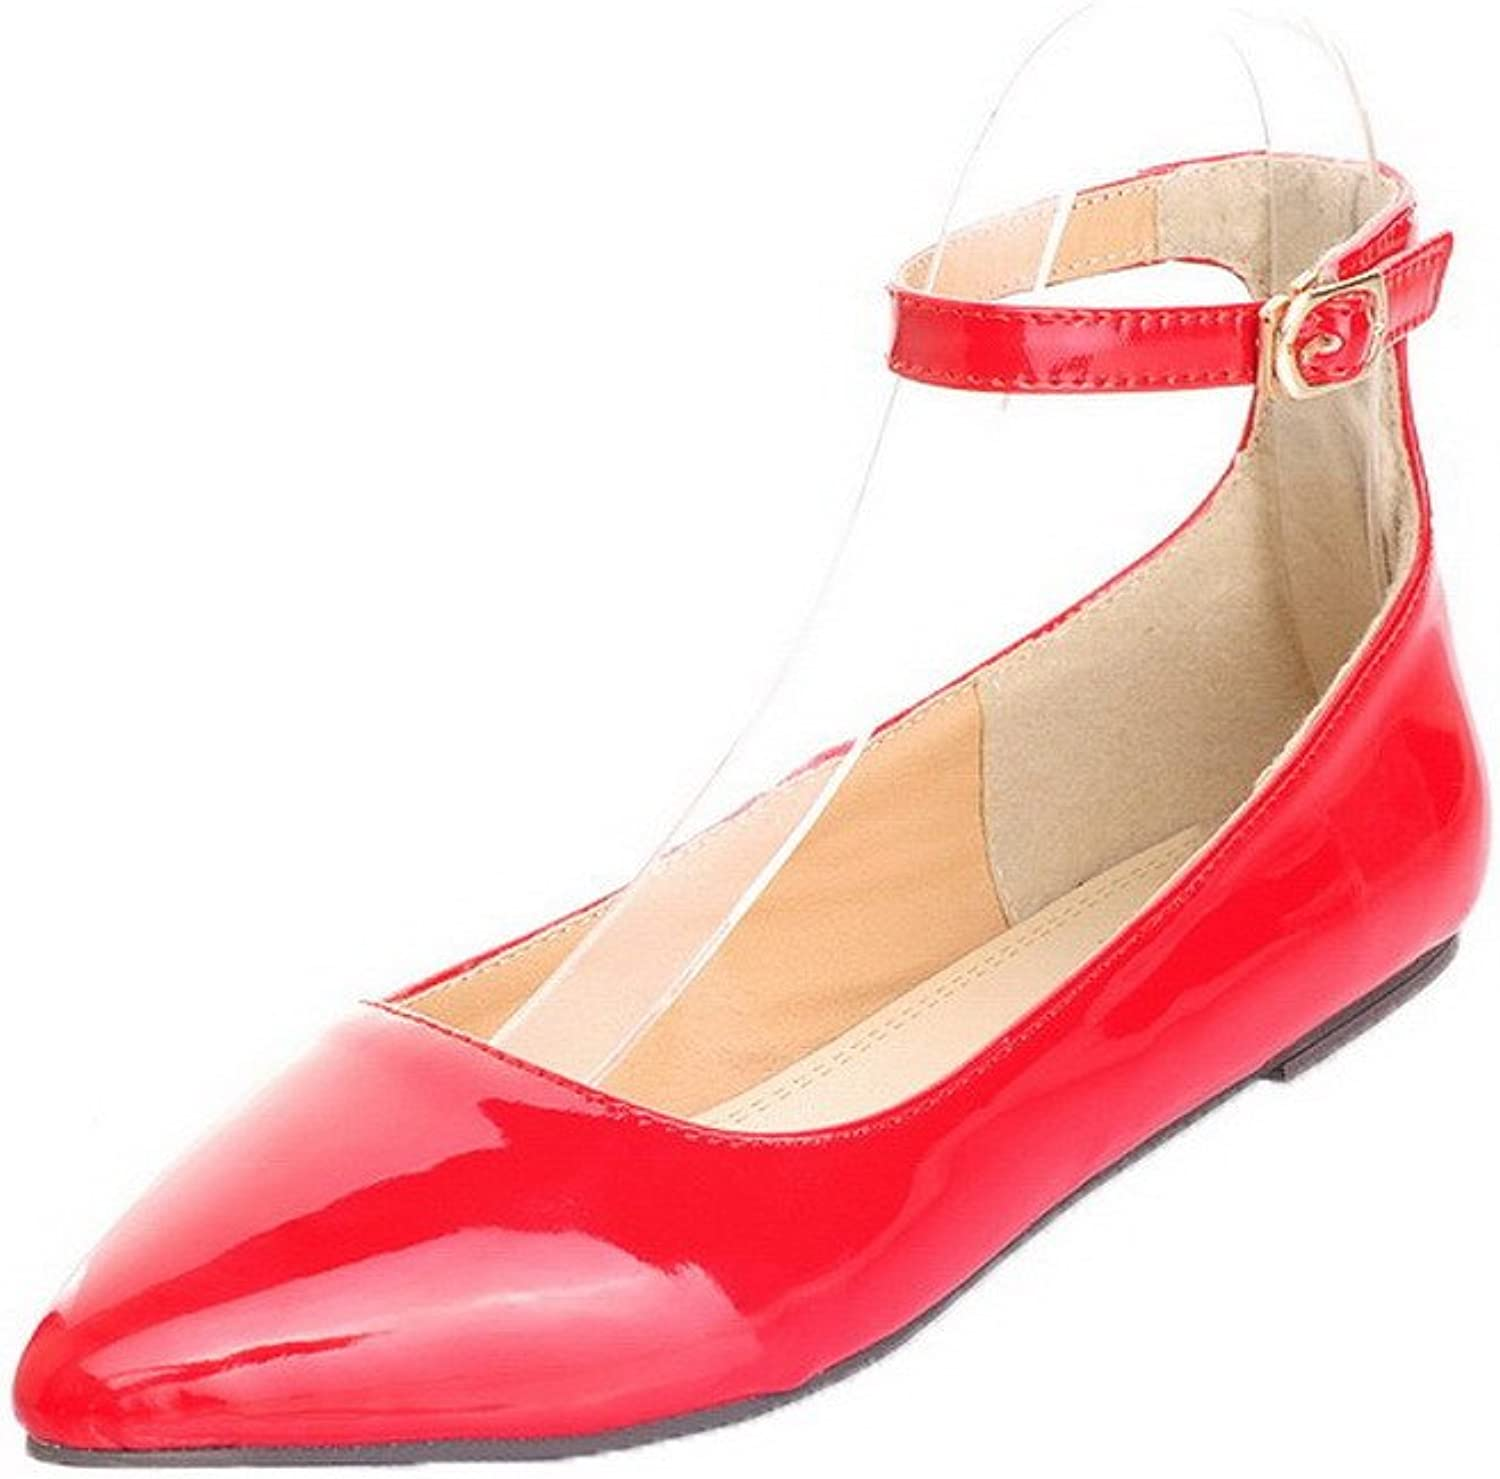 WeenFashion Women's Closed-Toe Low-Heels Patent Leather Solid Buckle Court shoes